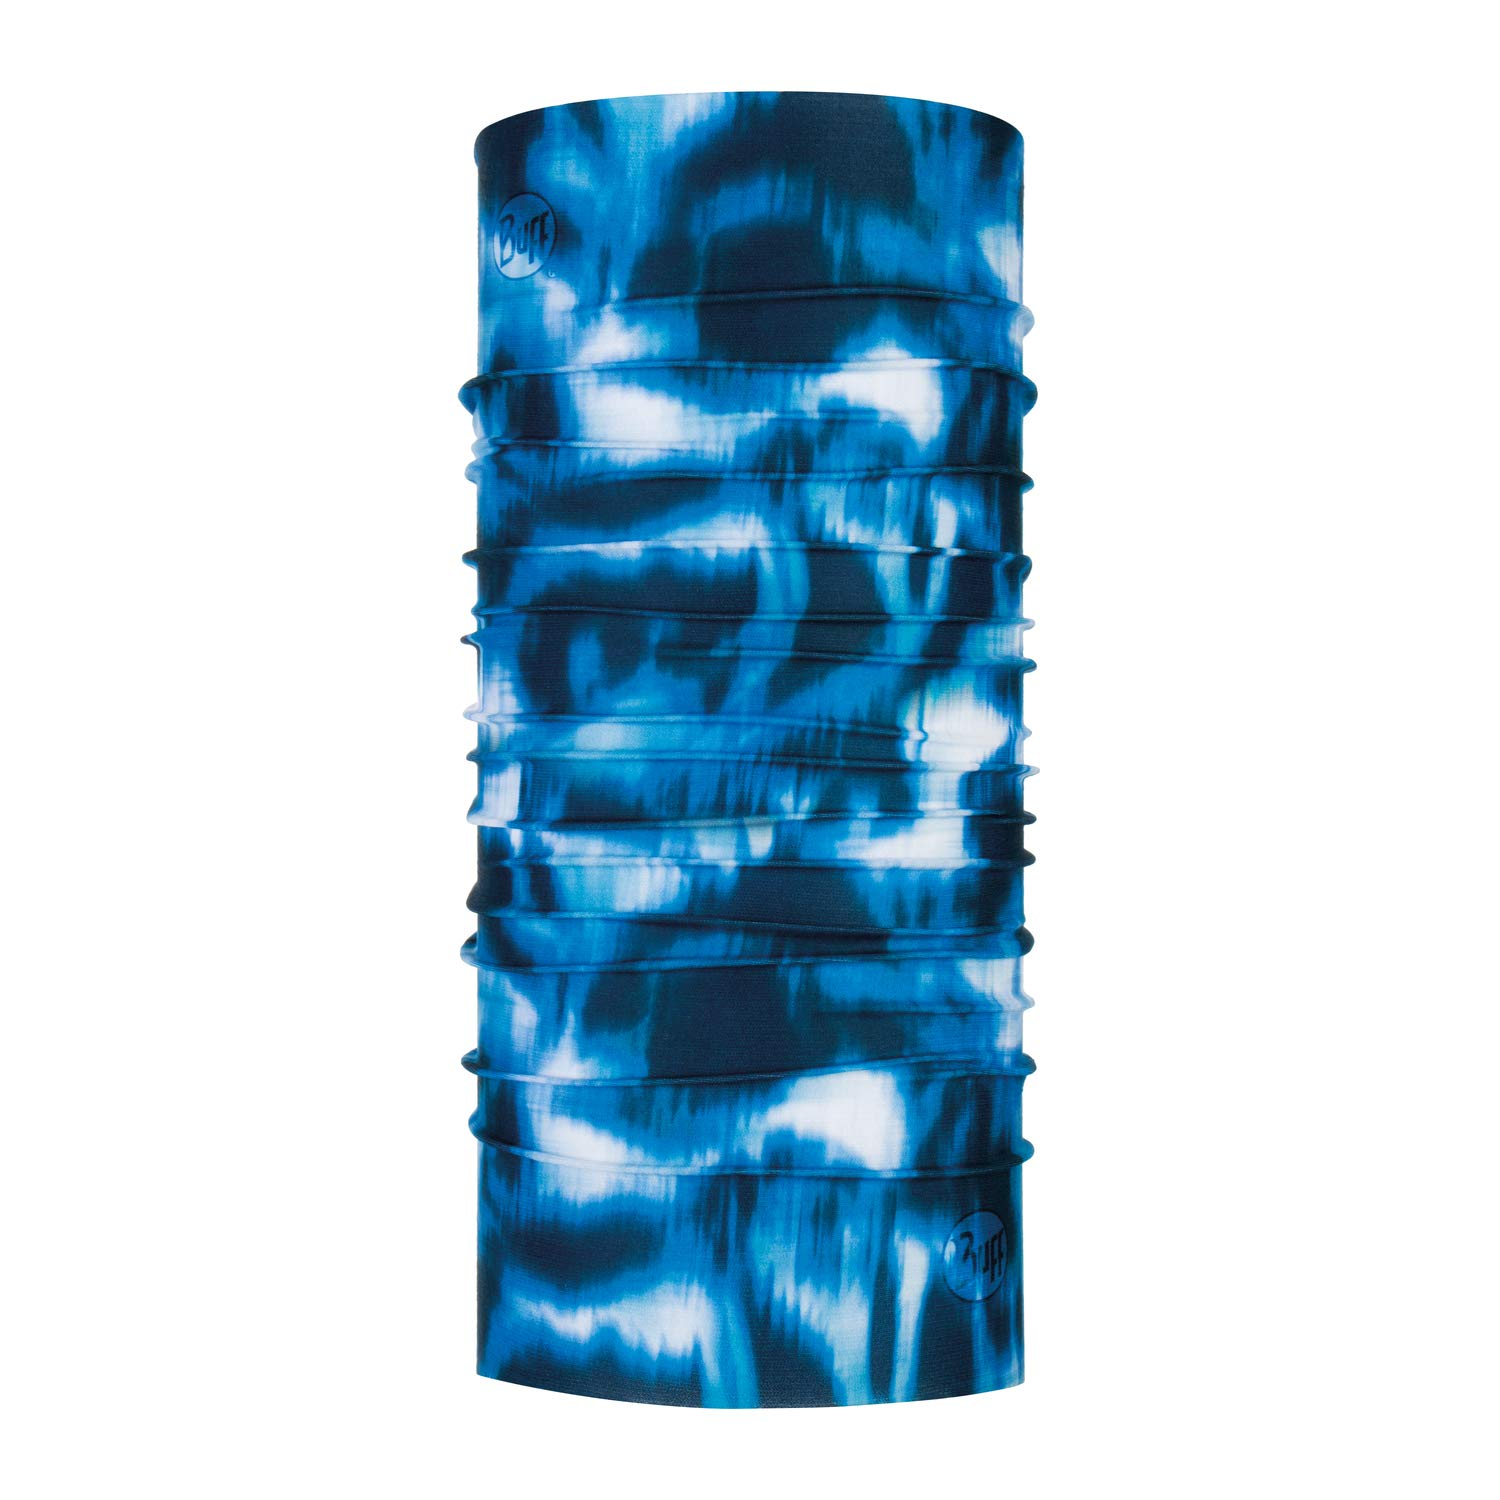 BUFF Unisex Coolnet UV+ Yule Seaport, One Size